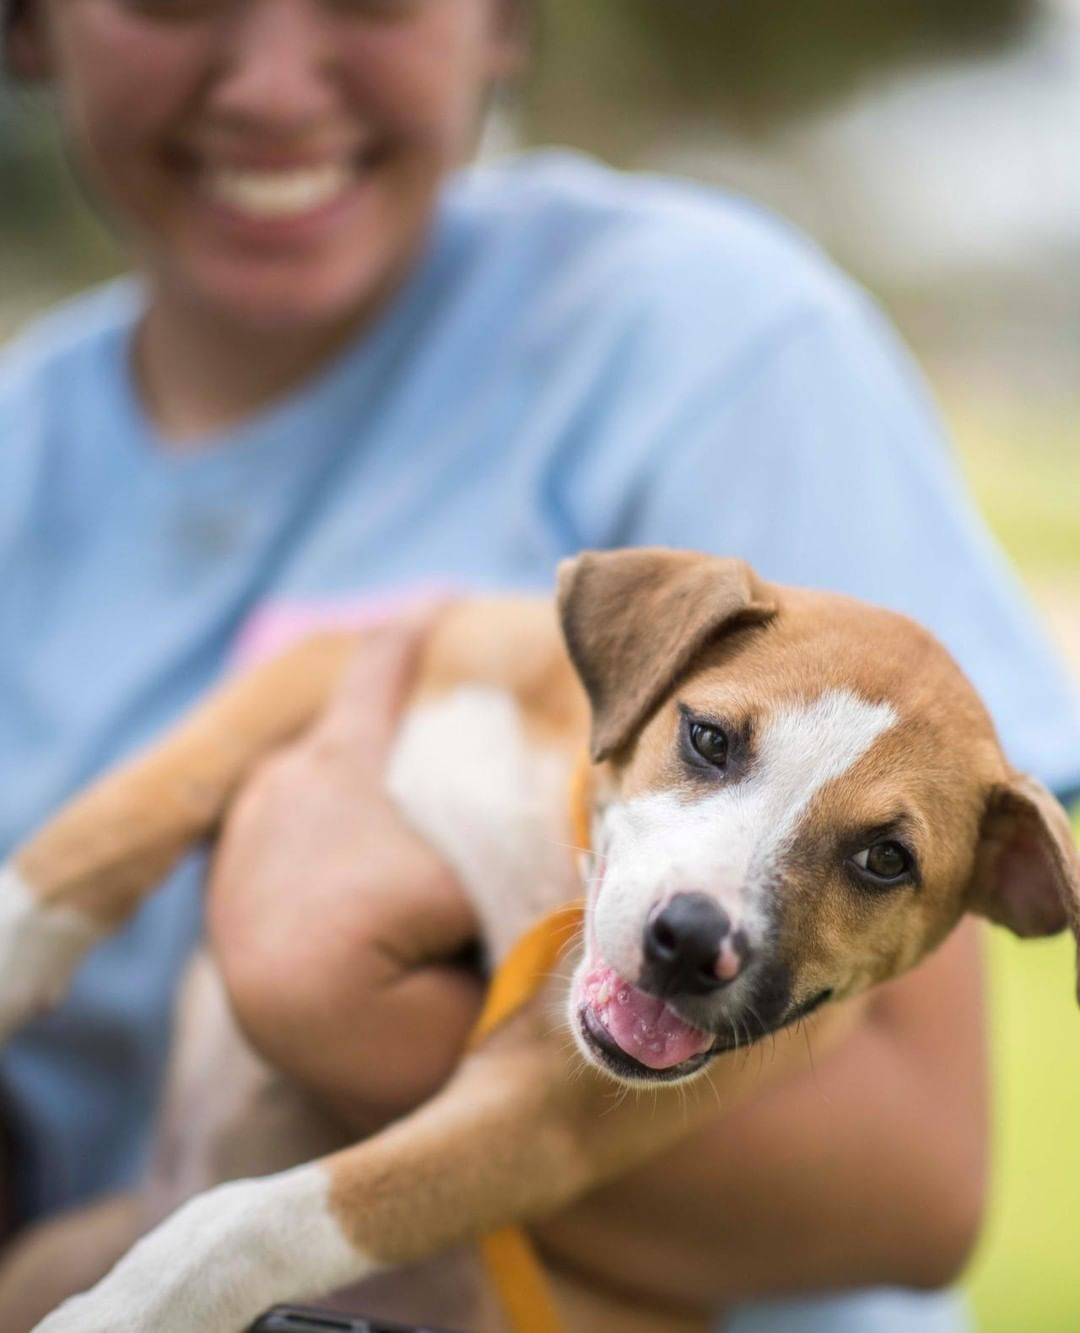 Petco Foundation On Instagram Our National Adoption Weekend Takes Place This Weekend At Petco Join Us Saturday April 6 Su April 7 Sunday Adoption